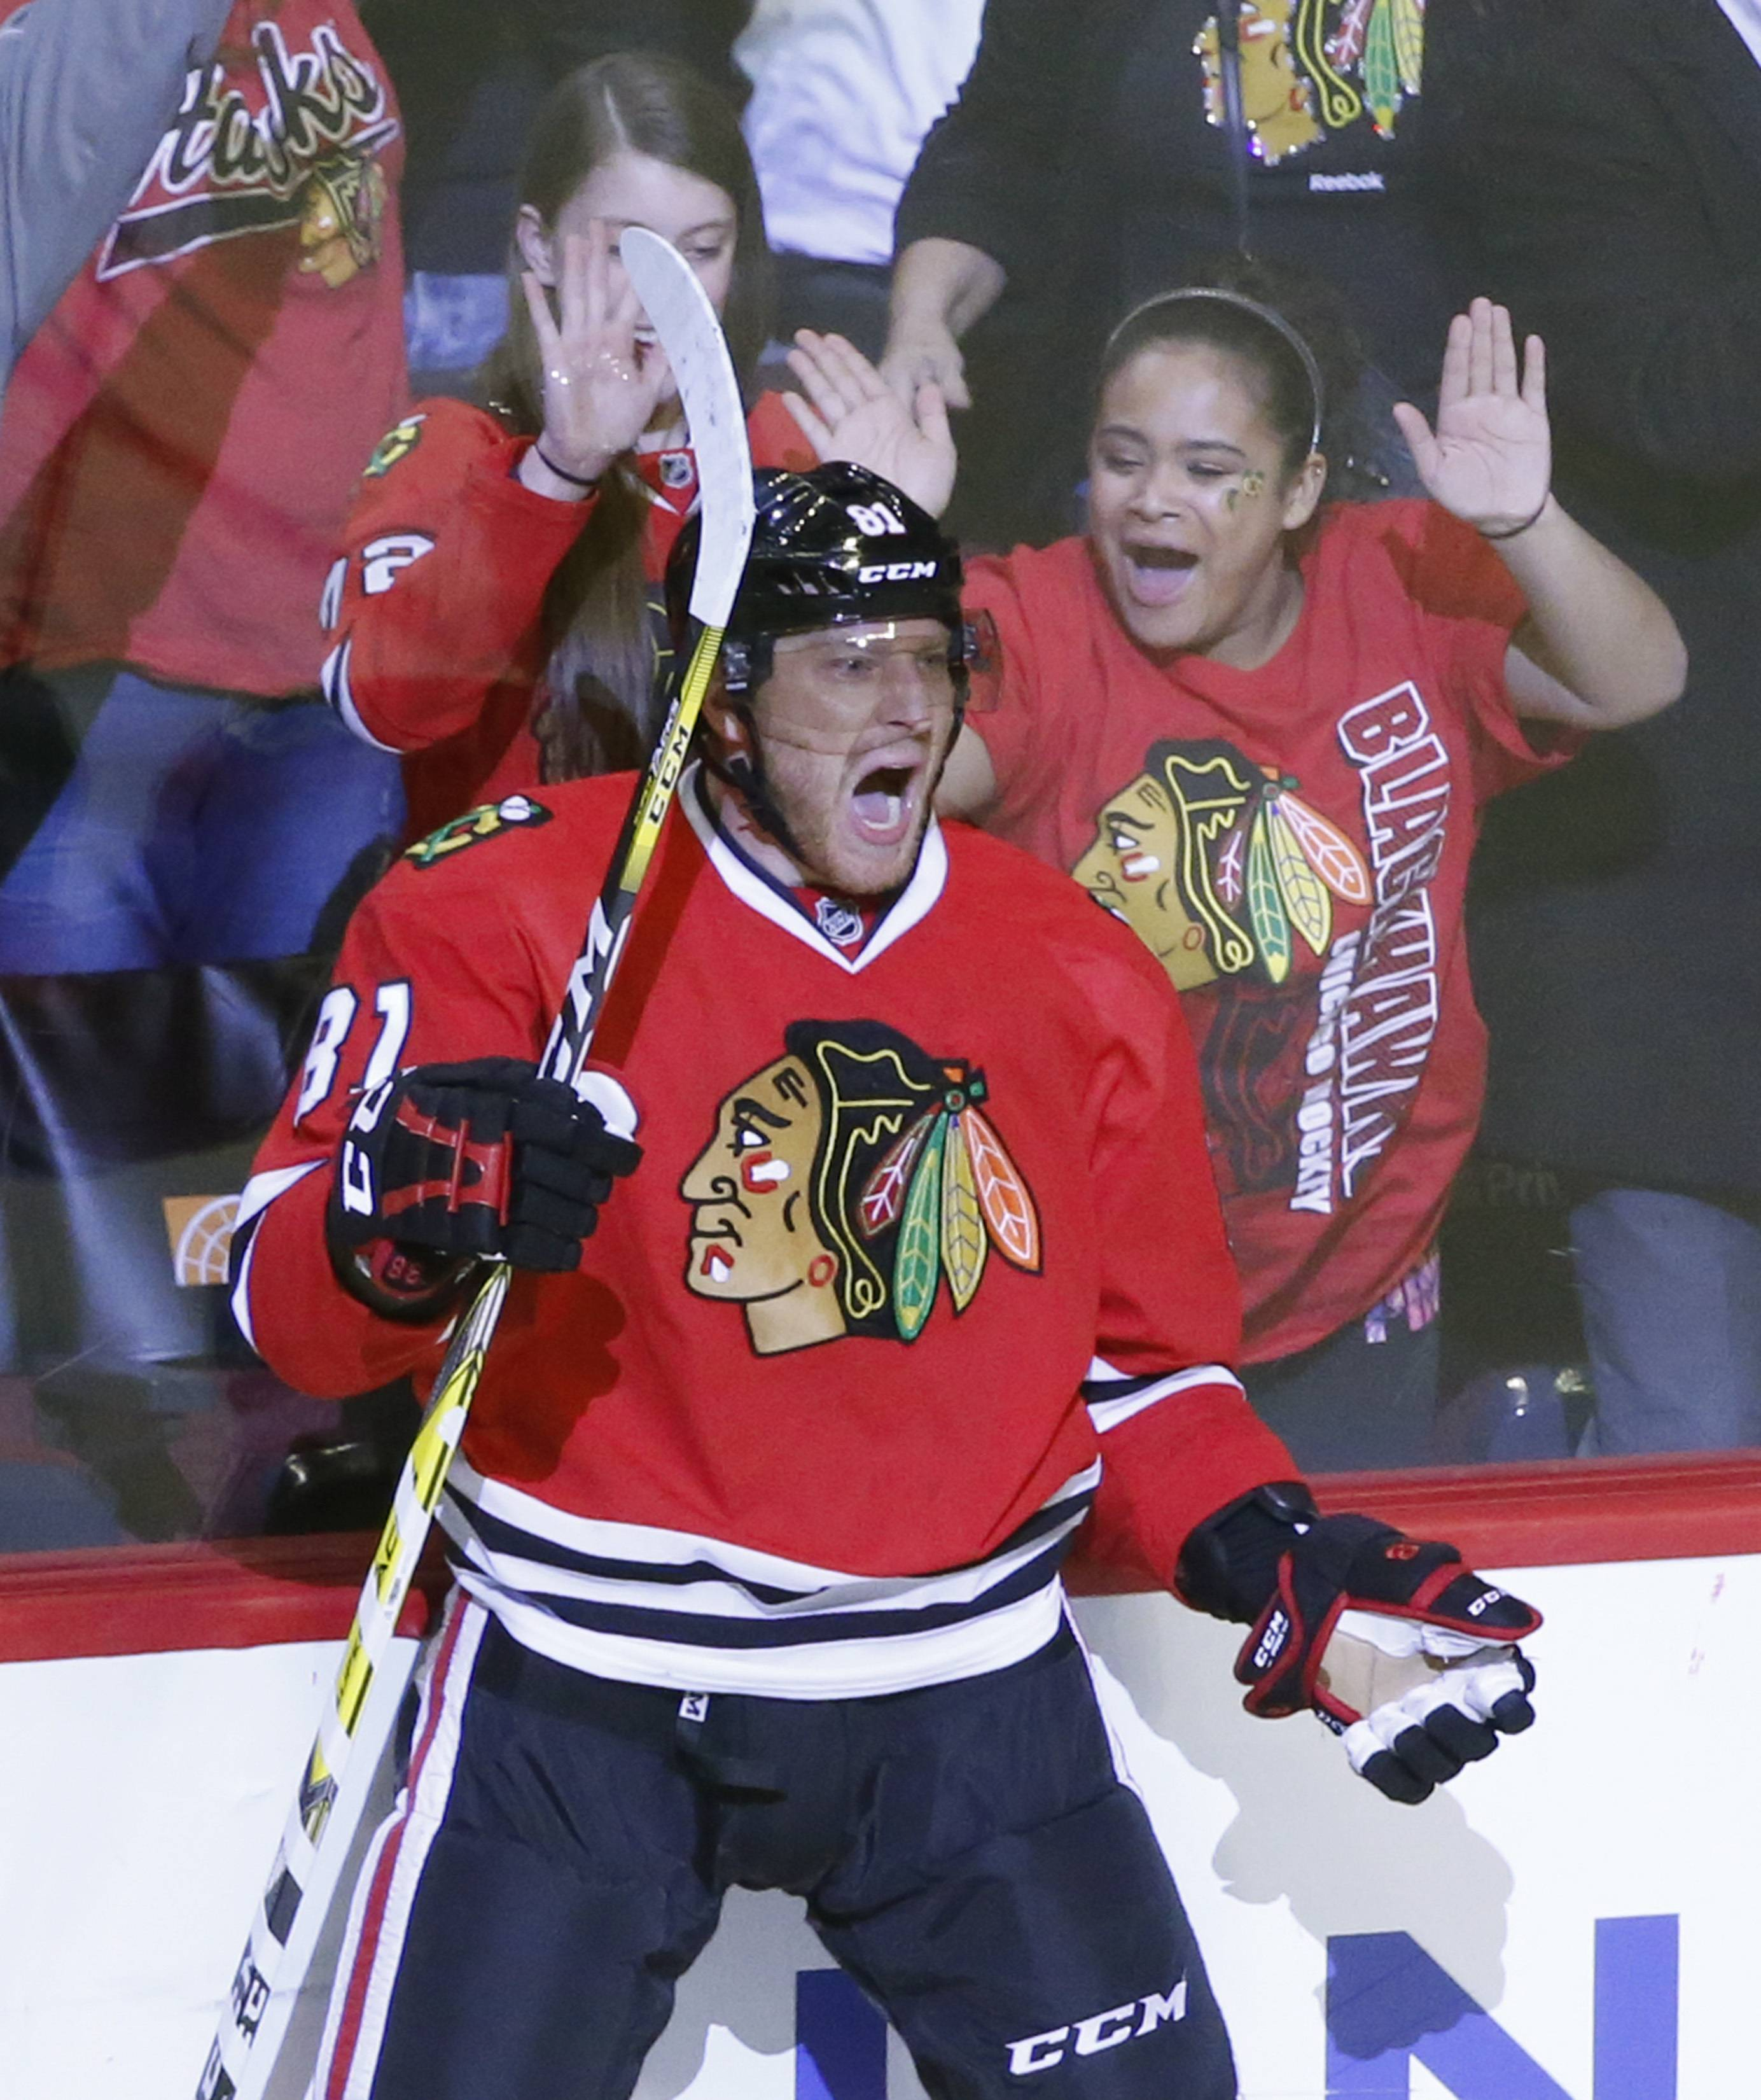 Blackhawks Marian Hossa is up to 14 goals so far this season, 2 of which came in the Hawks' 4-0 win over Arizona on Tuesday.